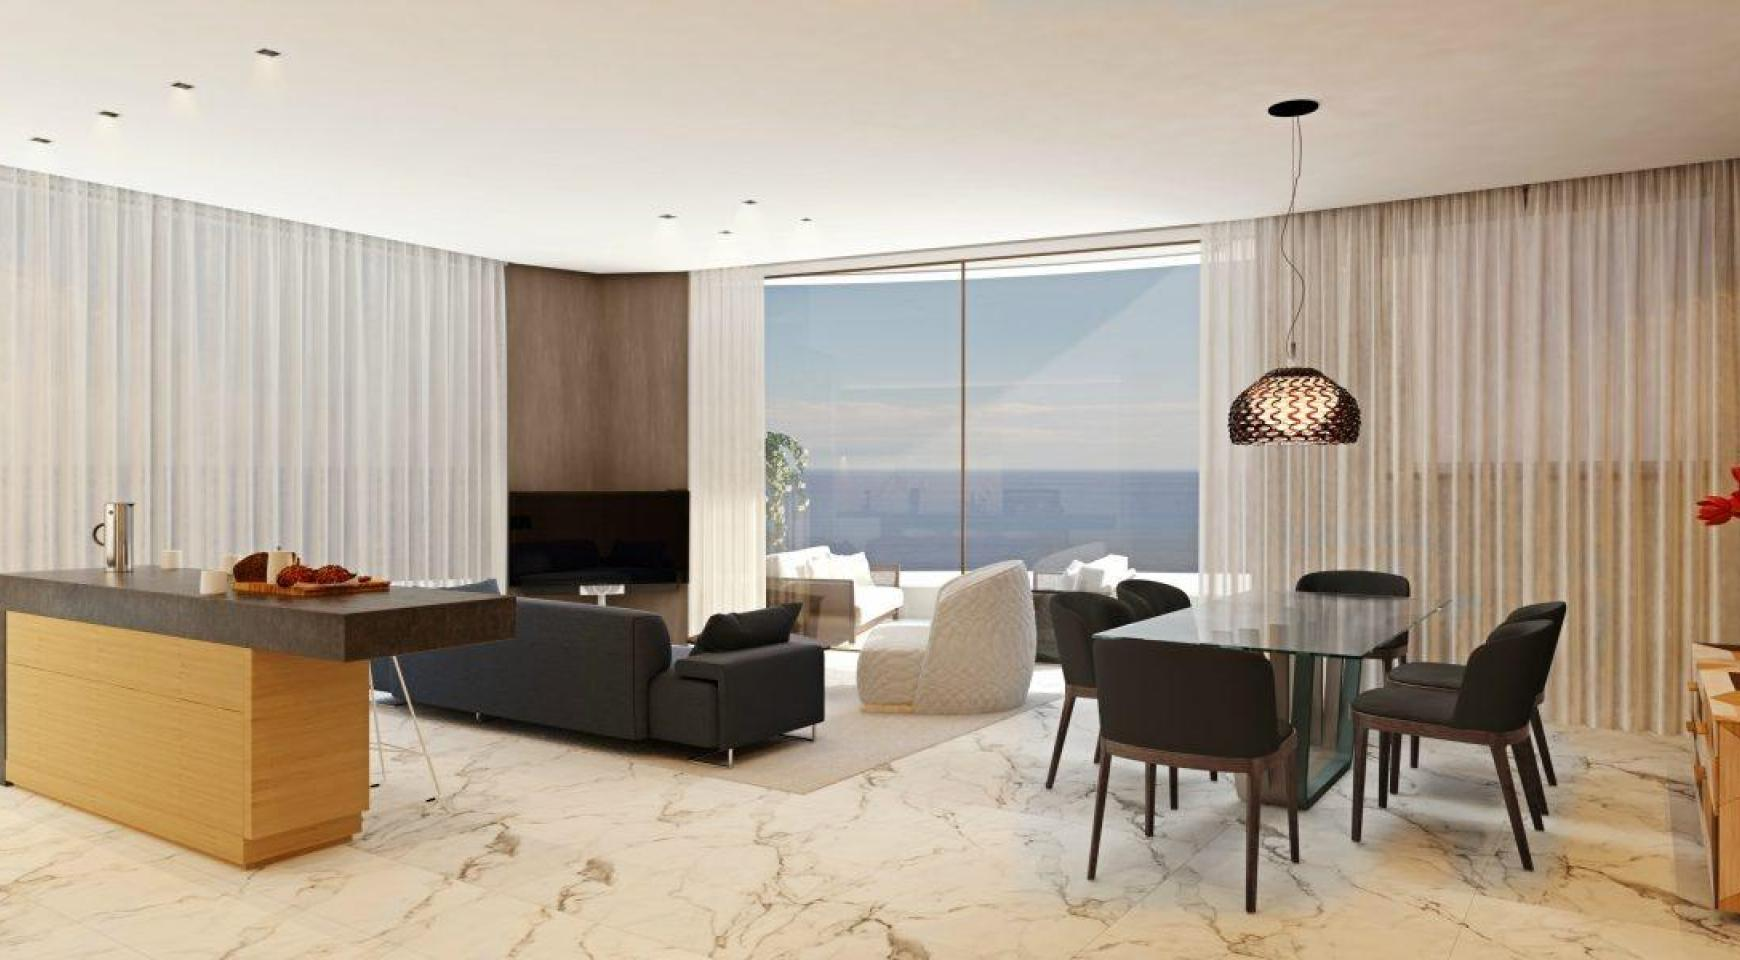 Modern 4 Bedroom Penthouse in a New Unique Project by the Sea - 15